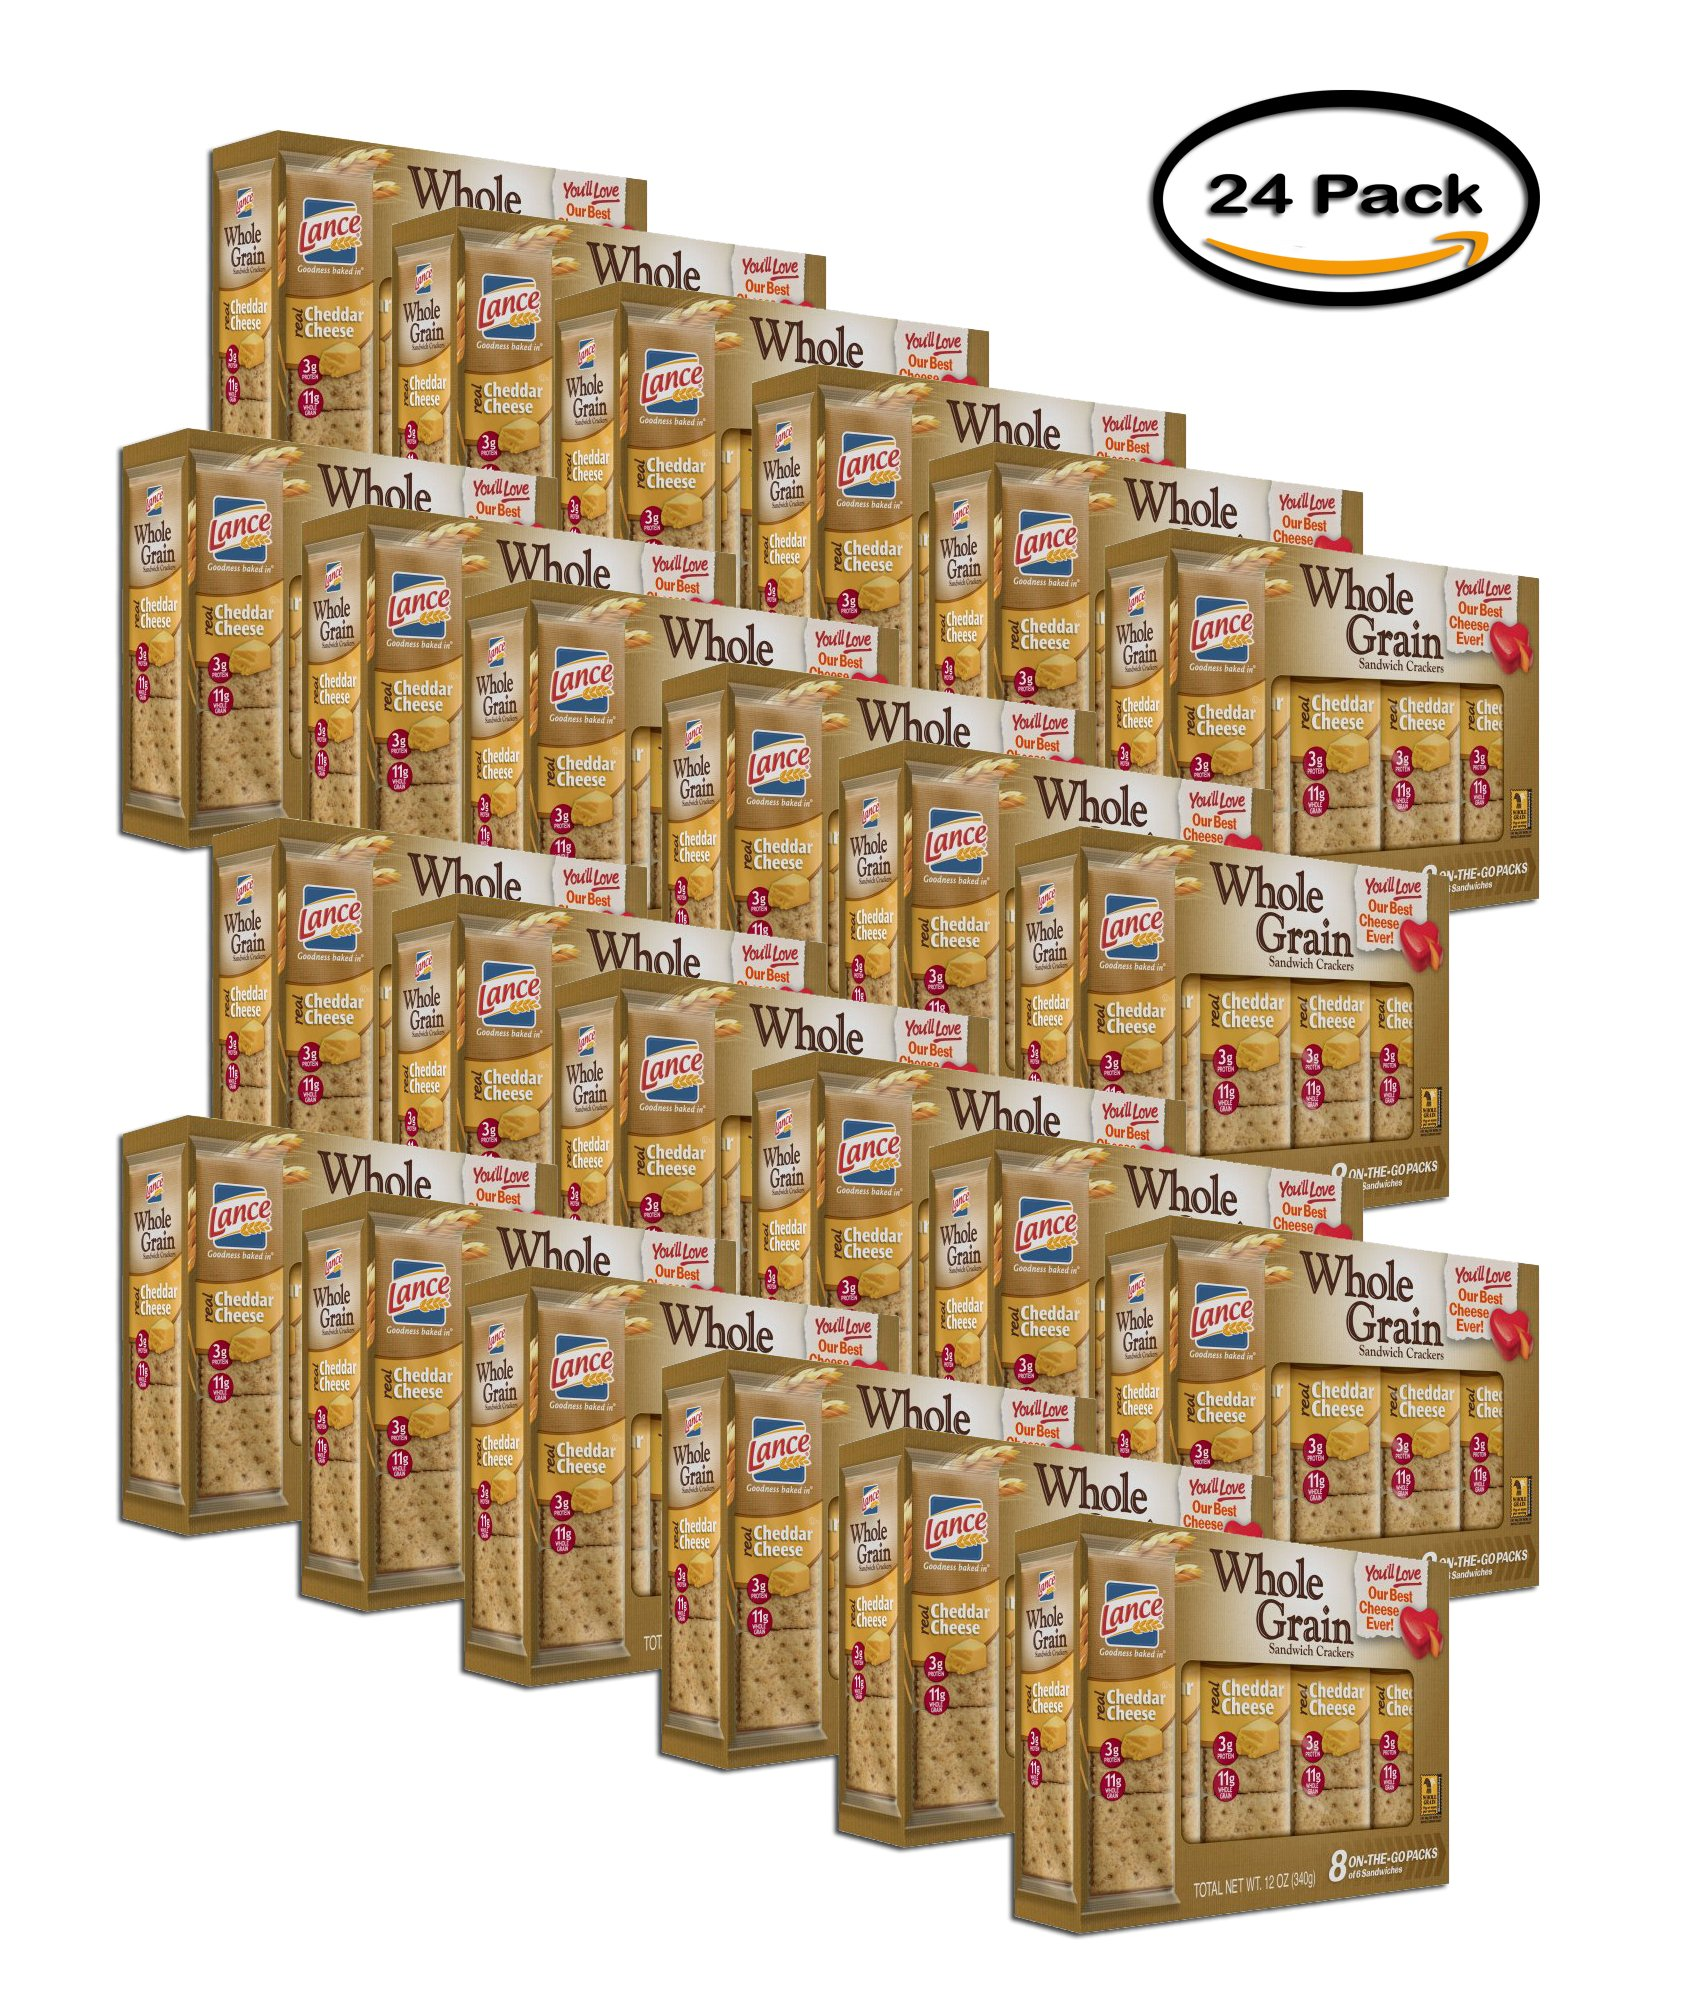 PACK OF 24 - Lance Cheddar Cheese Whole Grain Cracker Sandwiches - 8 Count by Lance